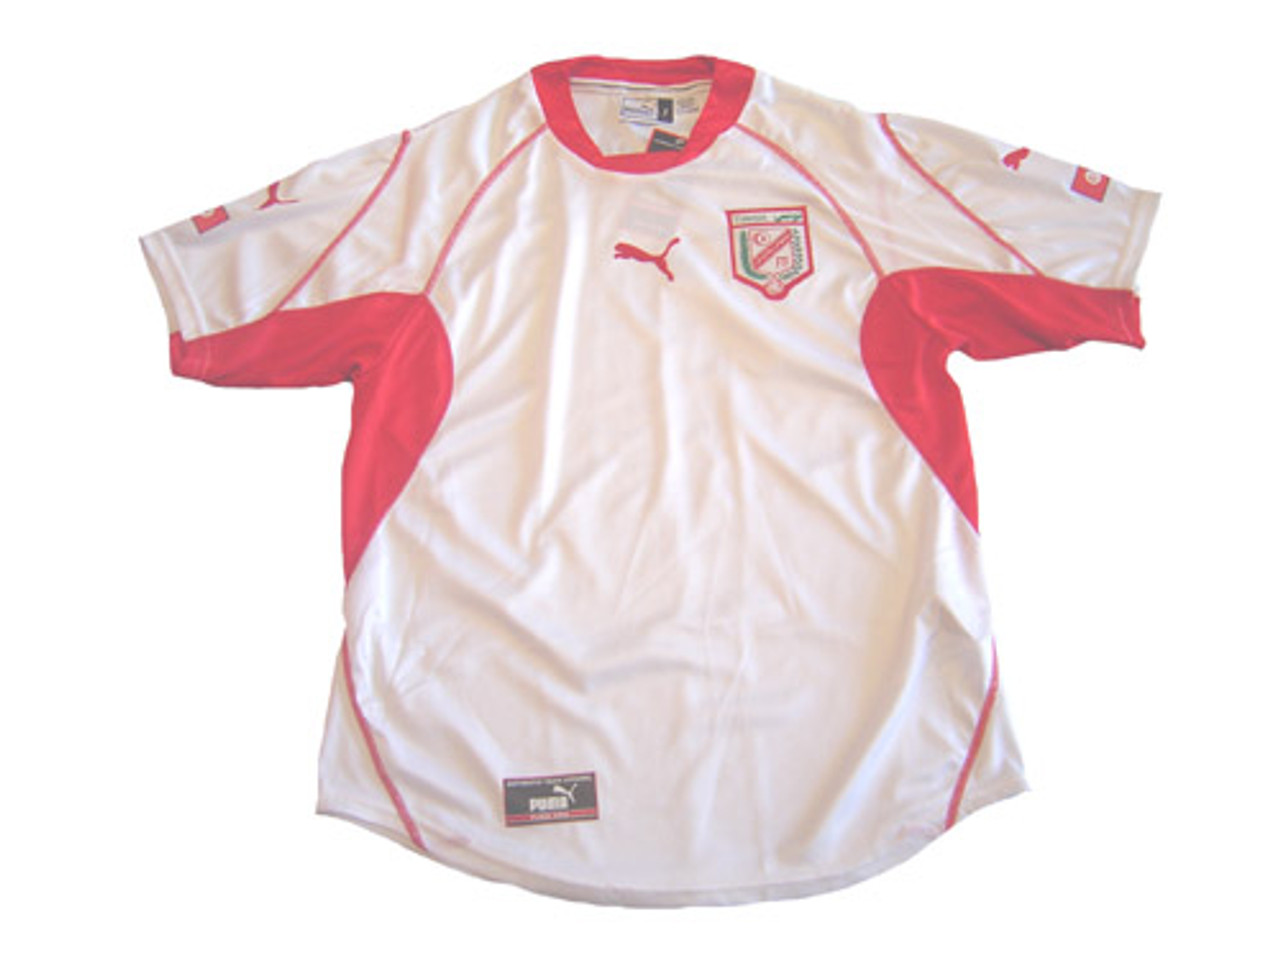 innovative design f5da5 ec804 PUMA TUNISIA 2003 HOME JERSEY WHITE